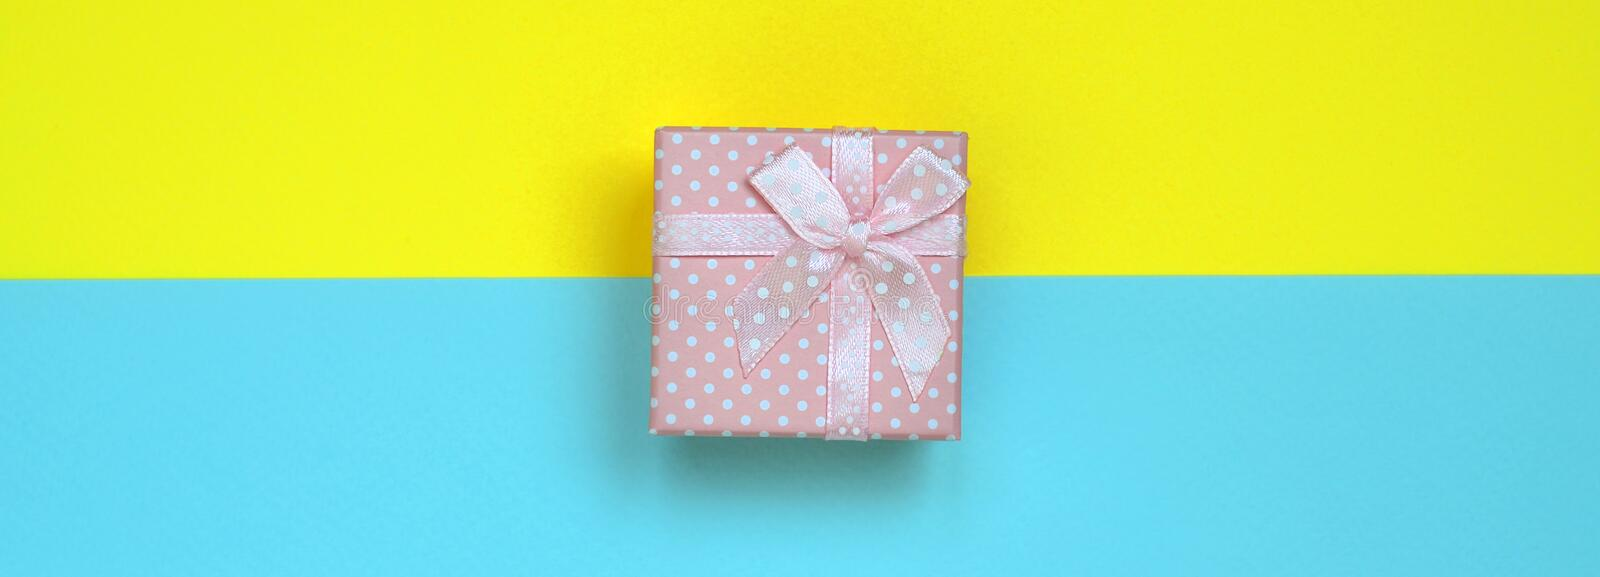 Small pink gift box lie on texture background of fashion pastel blue and yellow colors paper in minimal concept.  stock photos